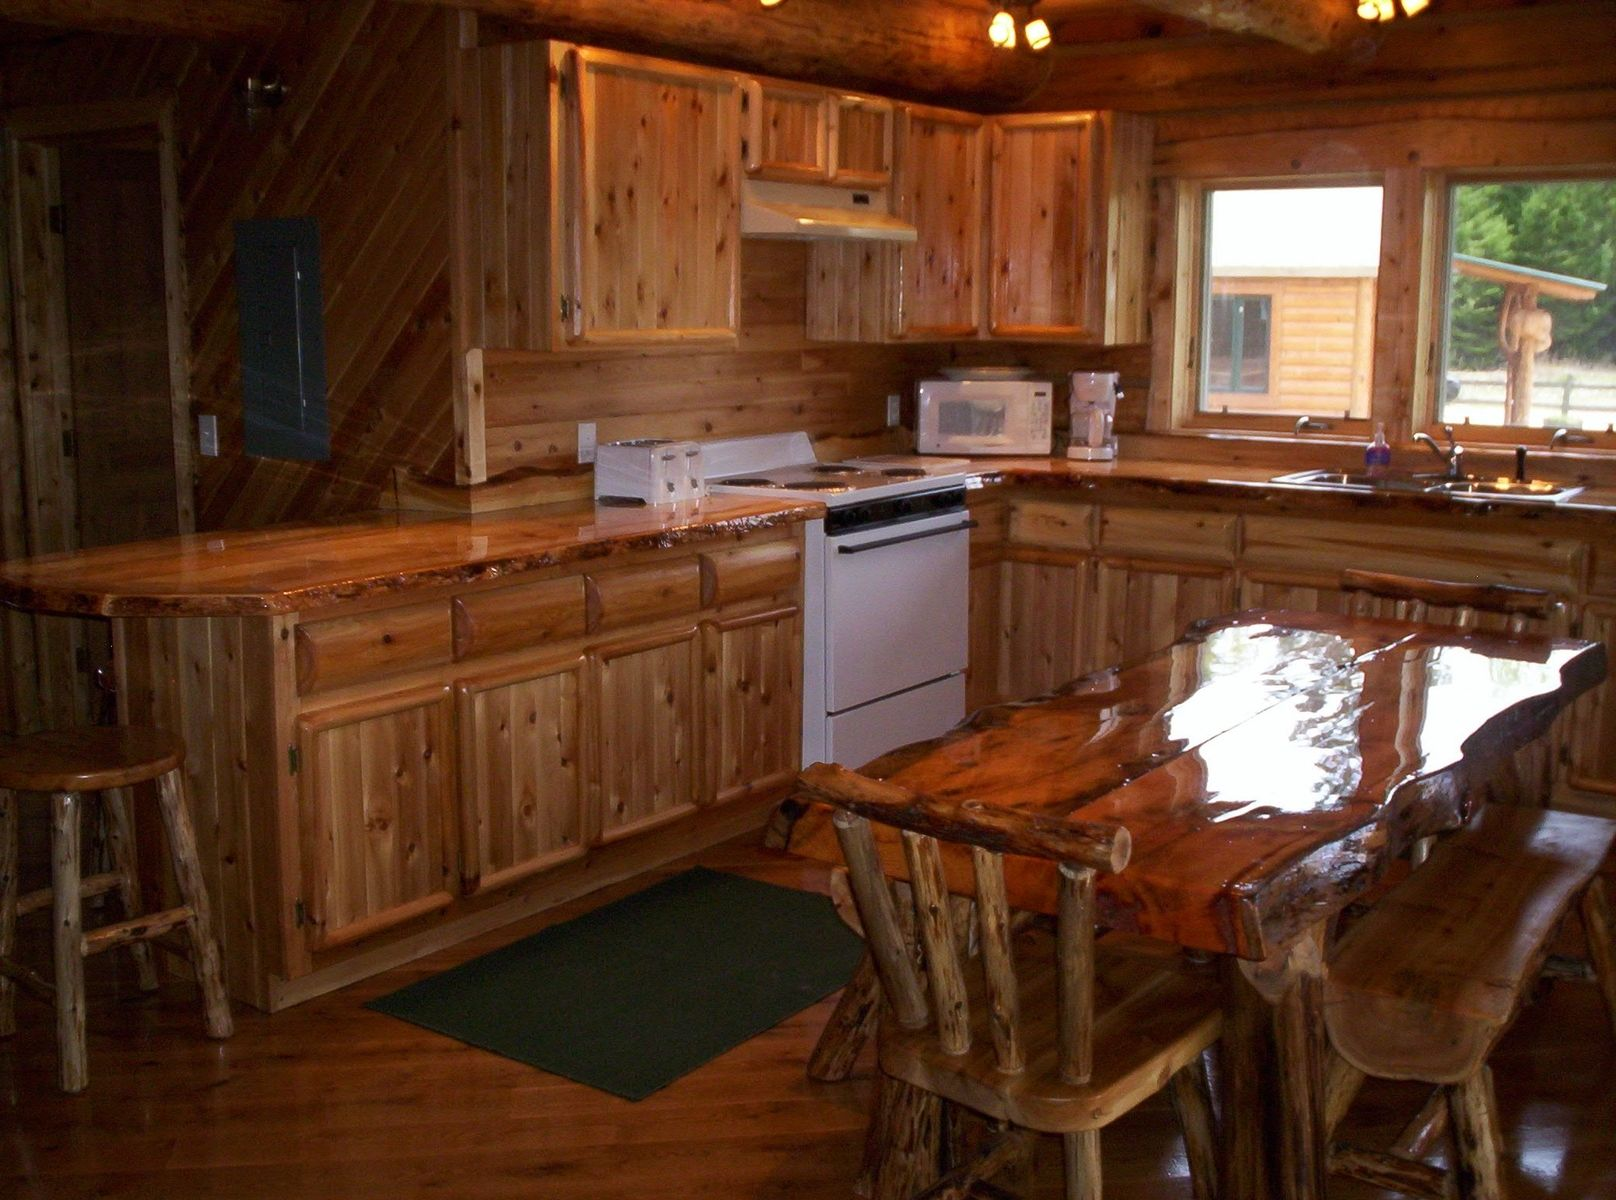 Custom Rustic Kitchens Hand Crafted Custom Rustic Cedar Kitchen Cabinetsking Of The